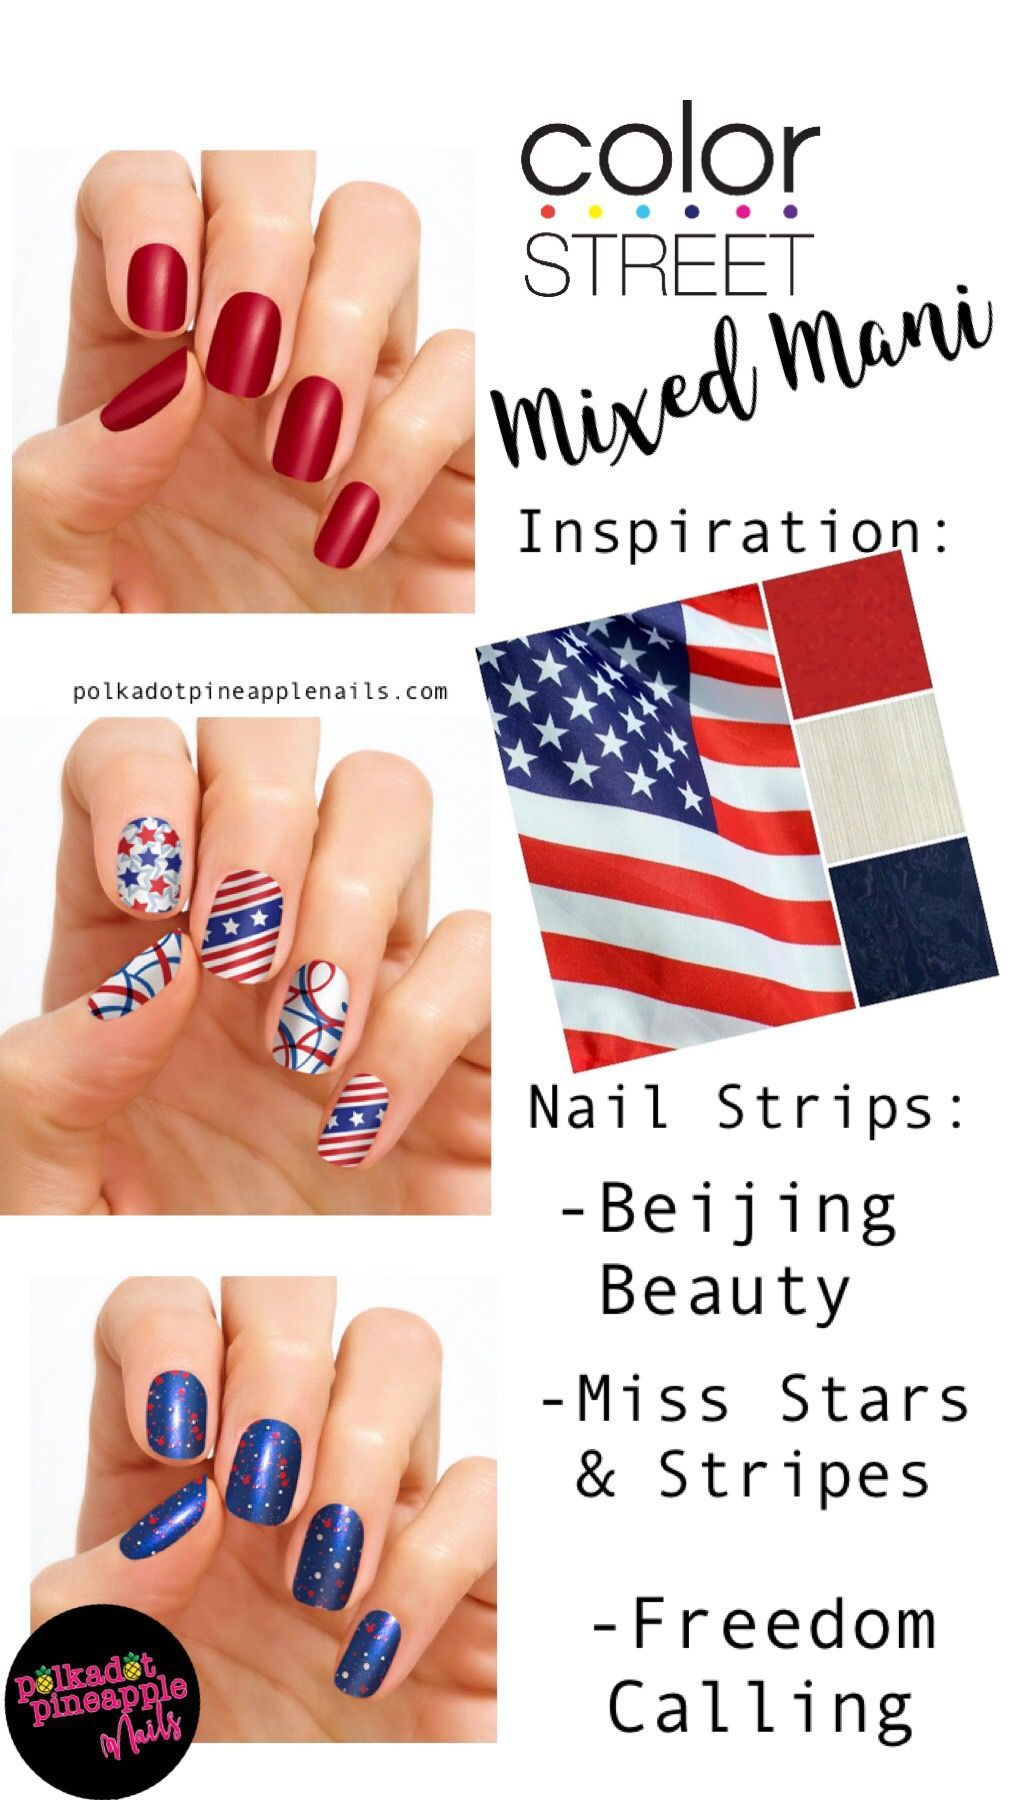 Color Street Nails Patriotic Collection Is Full Of Glitter And Sparkle Mixed Manicures Are A Nail Trend That M Color Street Nails Pineapple Nails Color Street